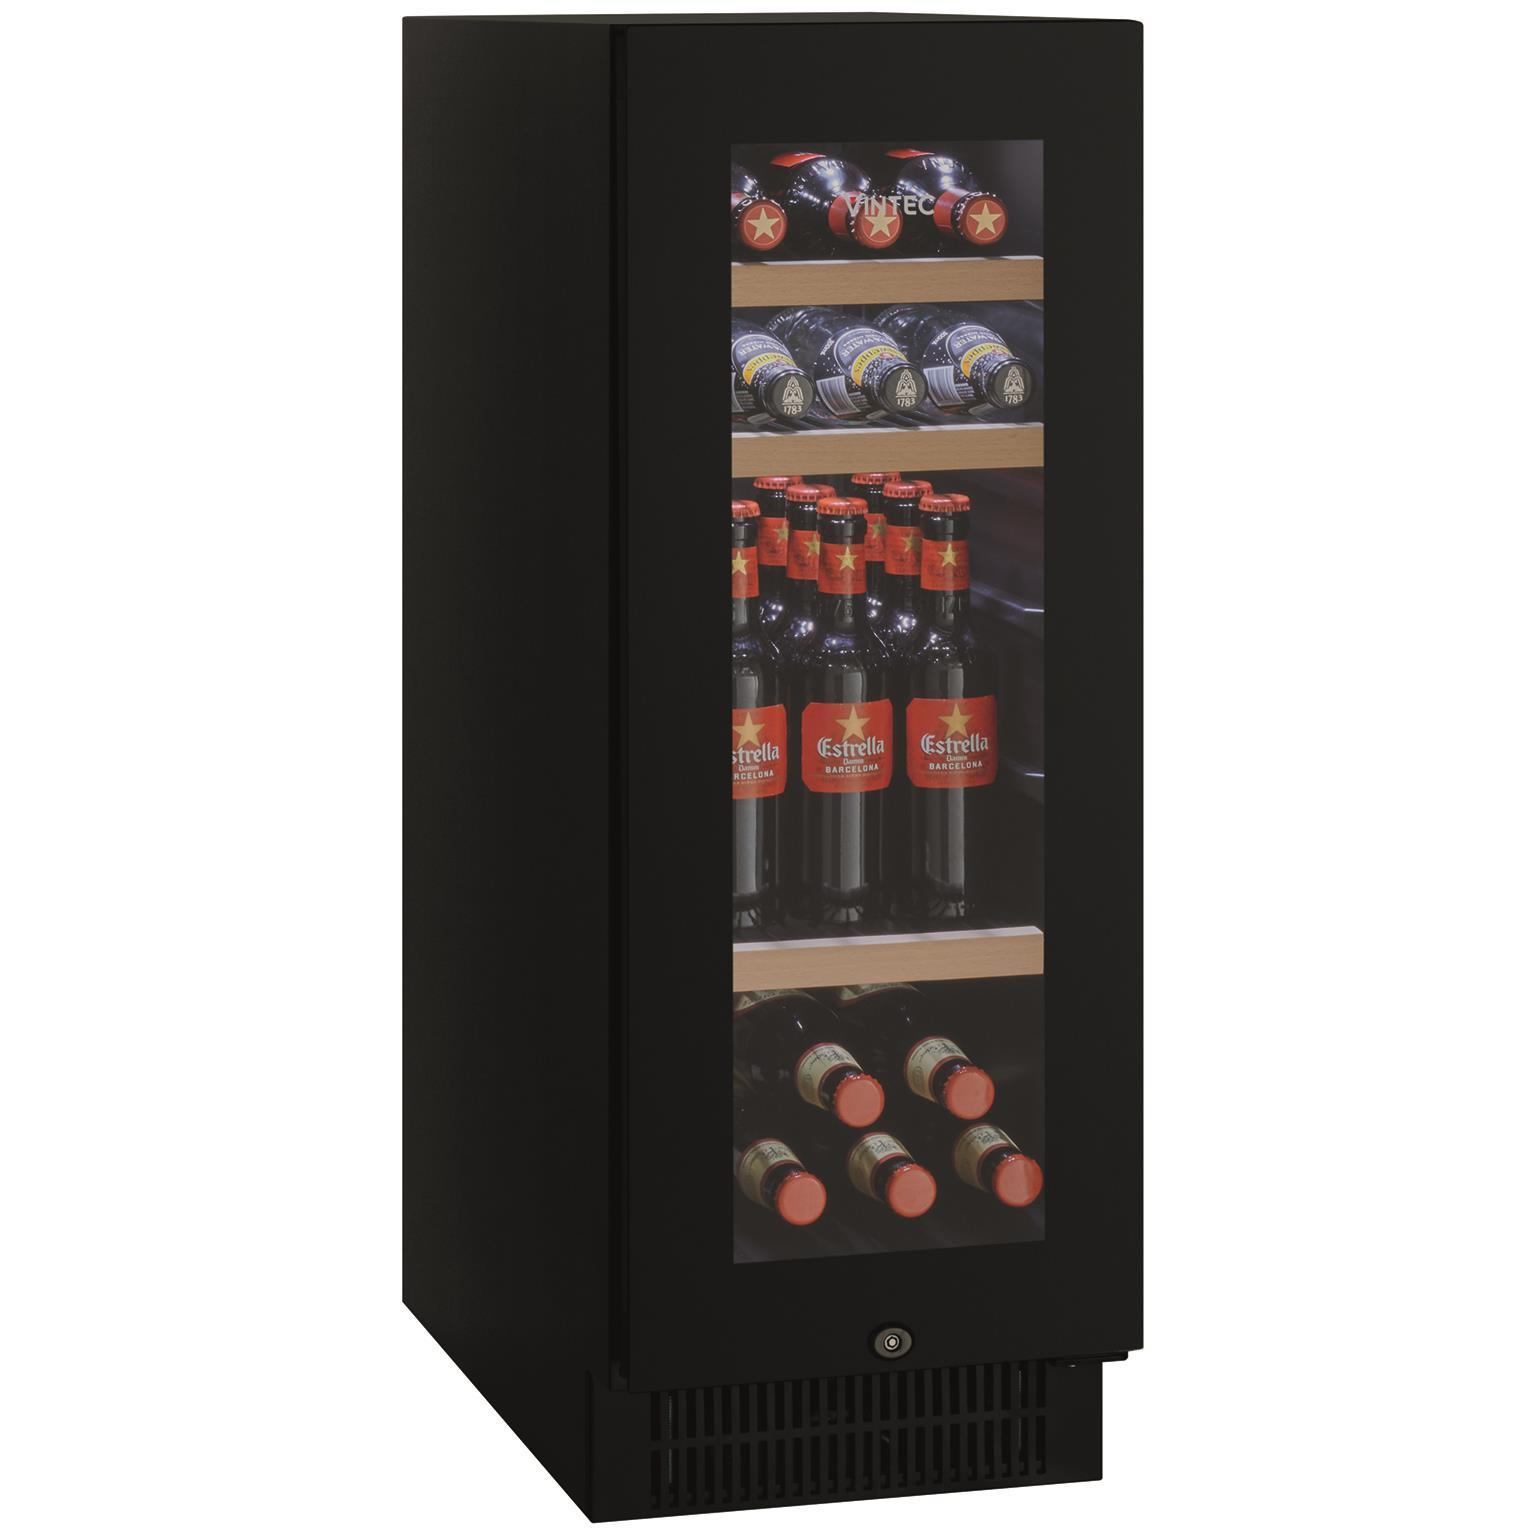 Vintec VBS020SBAX 40 Beer-Bottle Beverage Centre